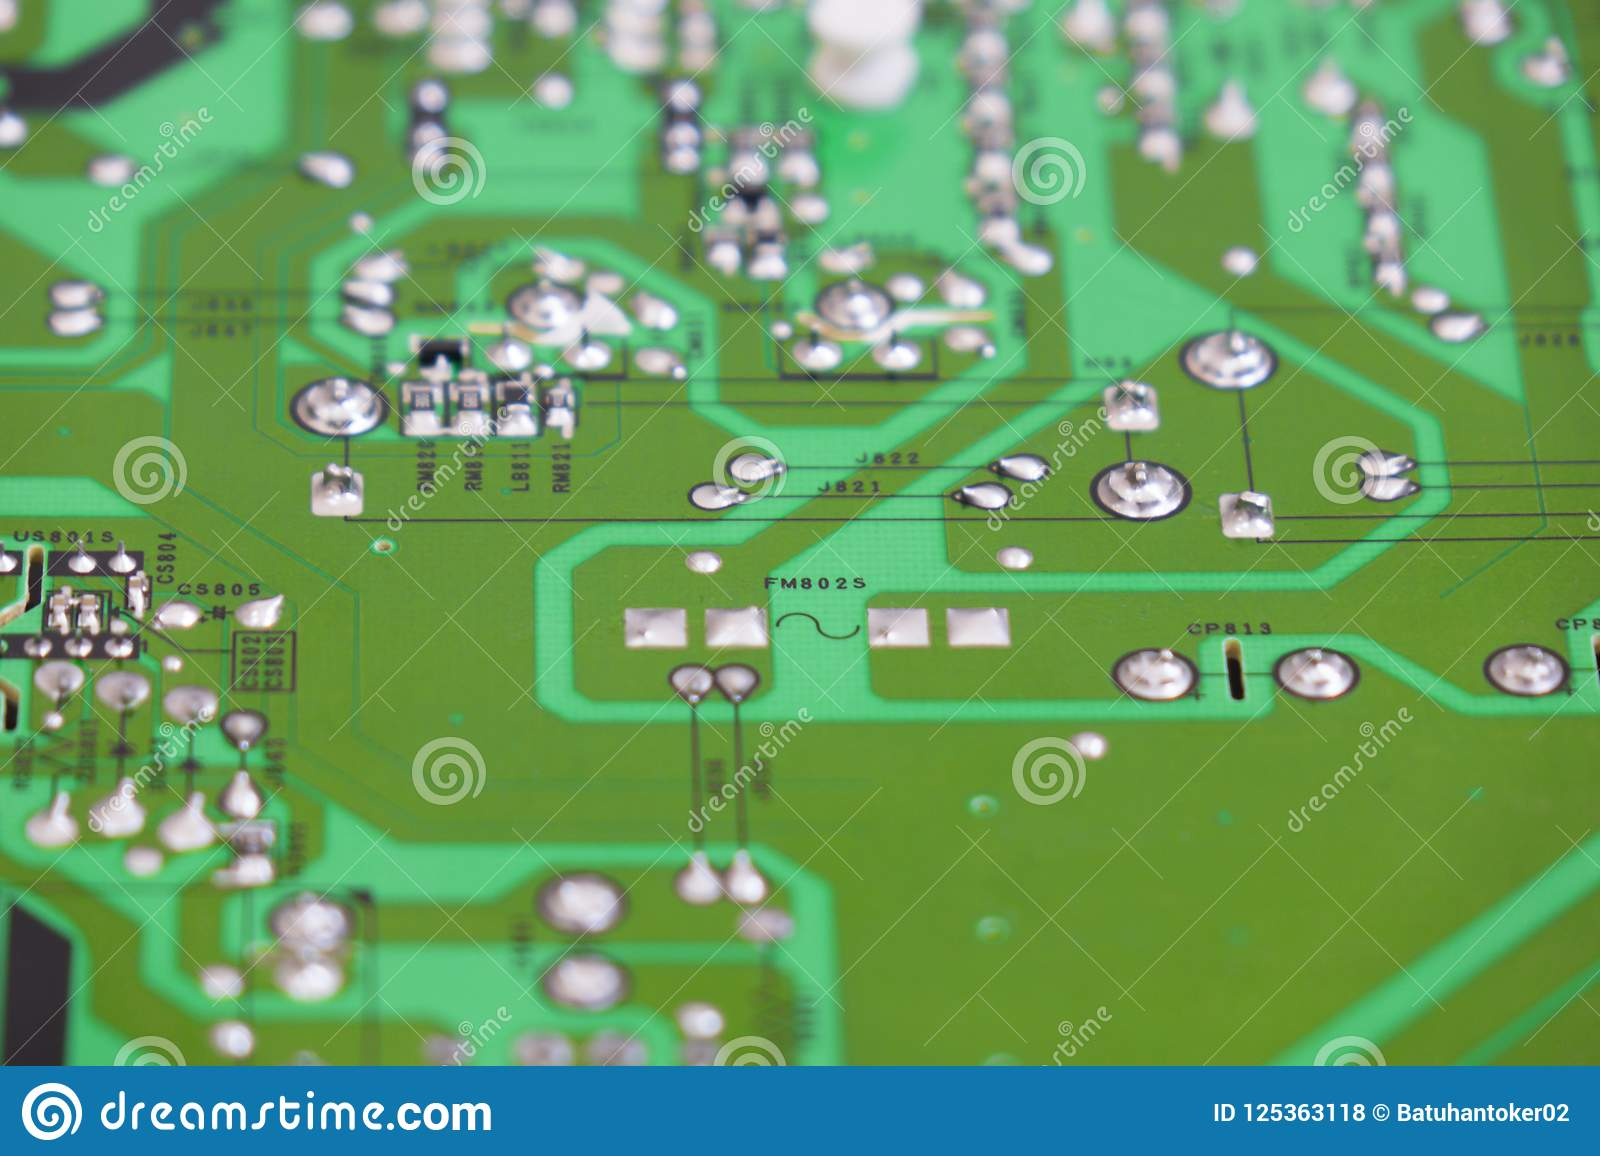 Quality Control And Assembly Of Smt Printed Components On Circuit Board Engineering Download Stock Photo Image